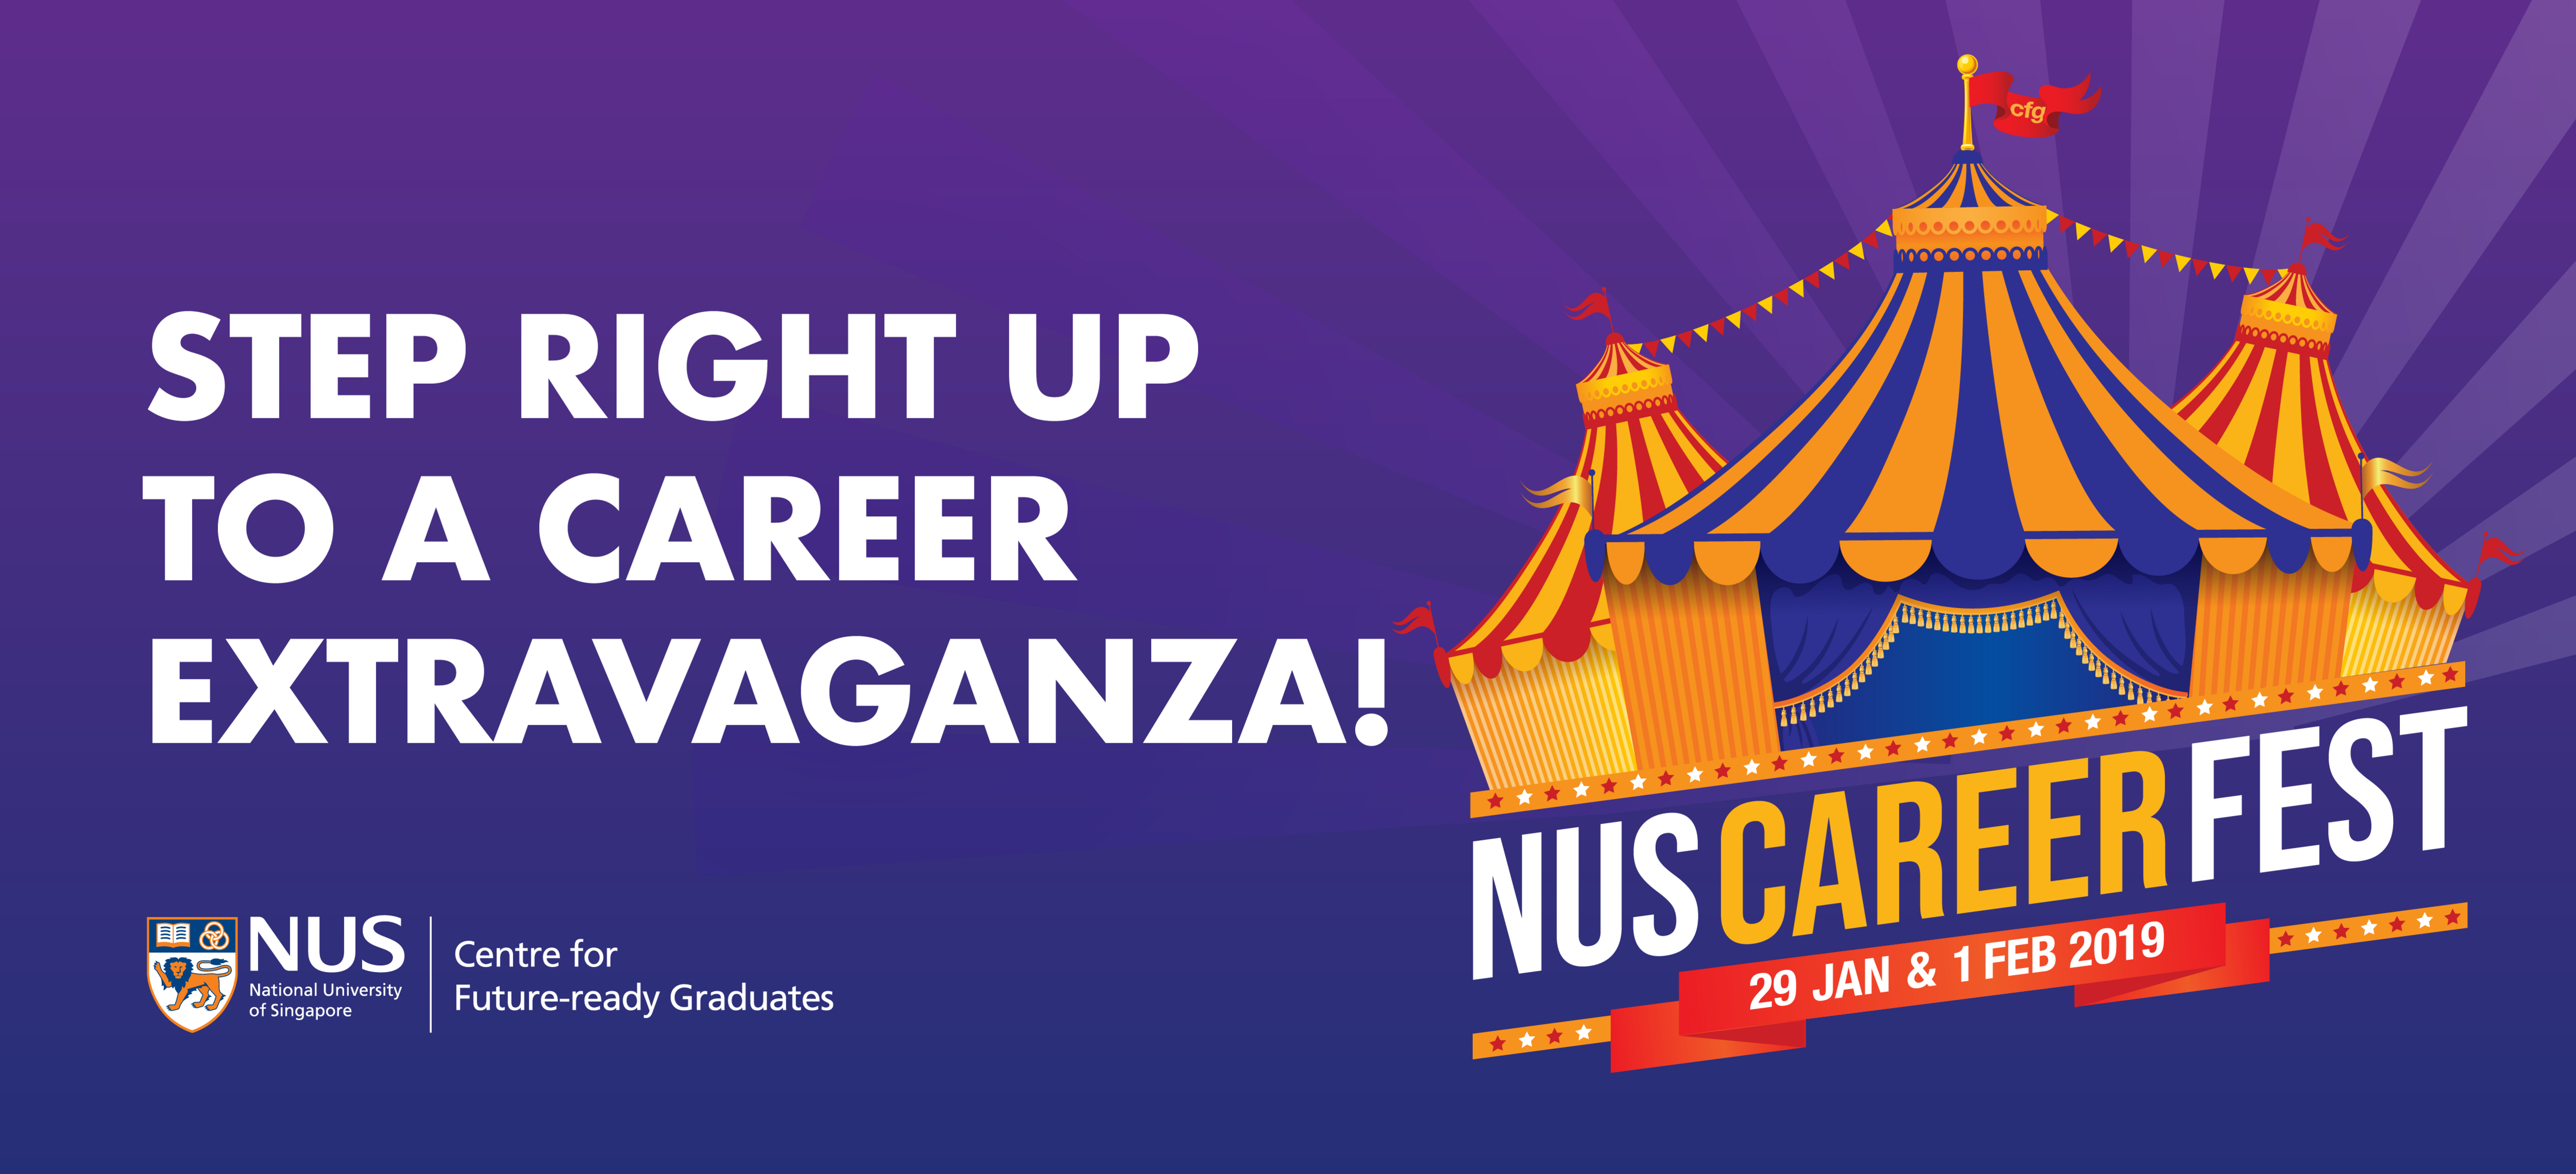 Nus Career Fest 2019 intended for Nus 2019 2020 Academic Calendar